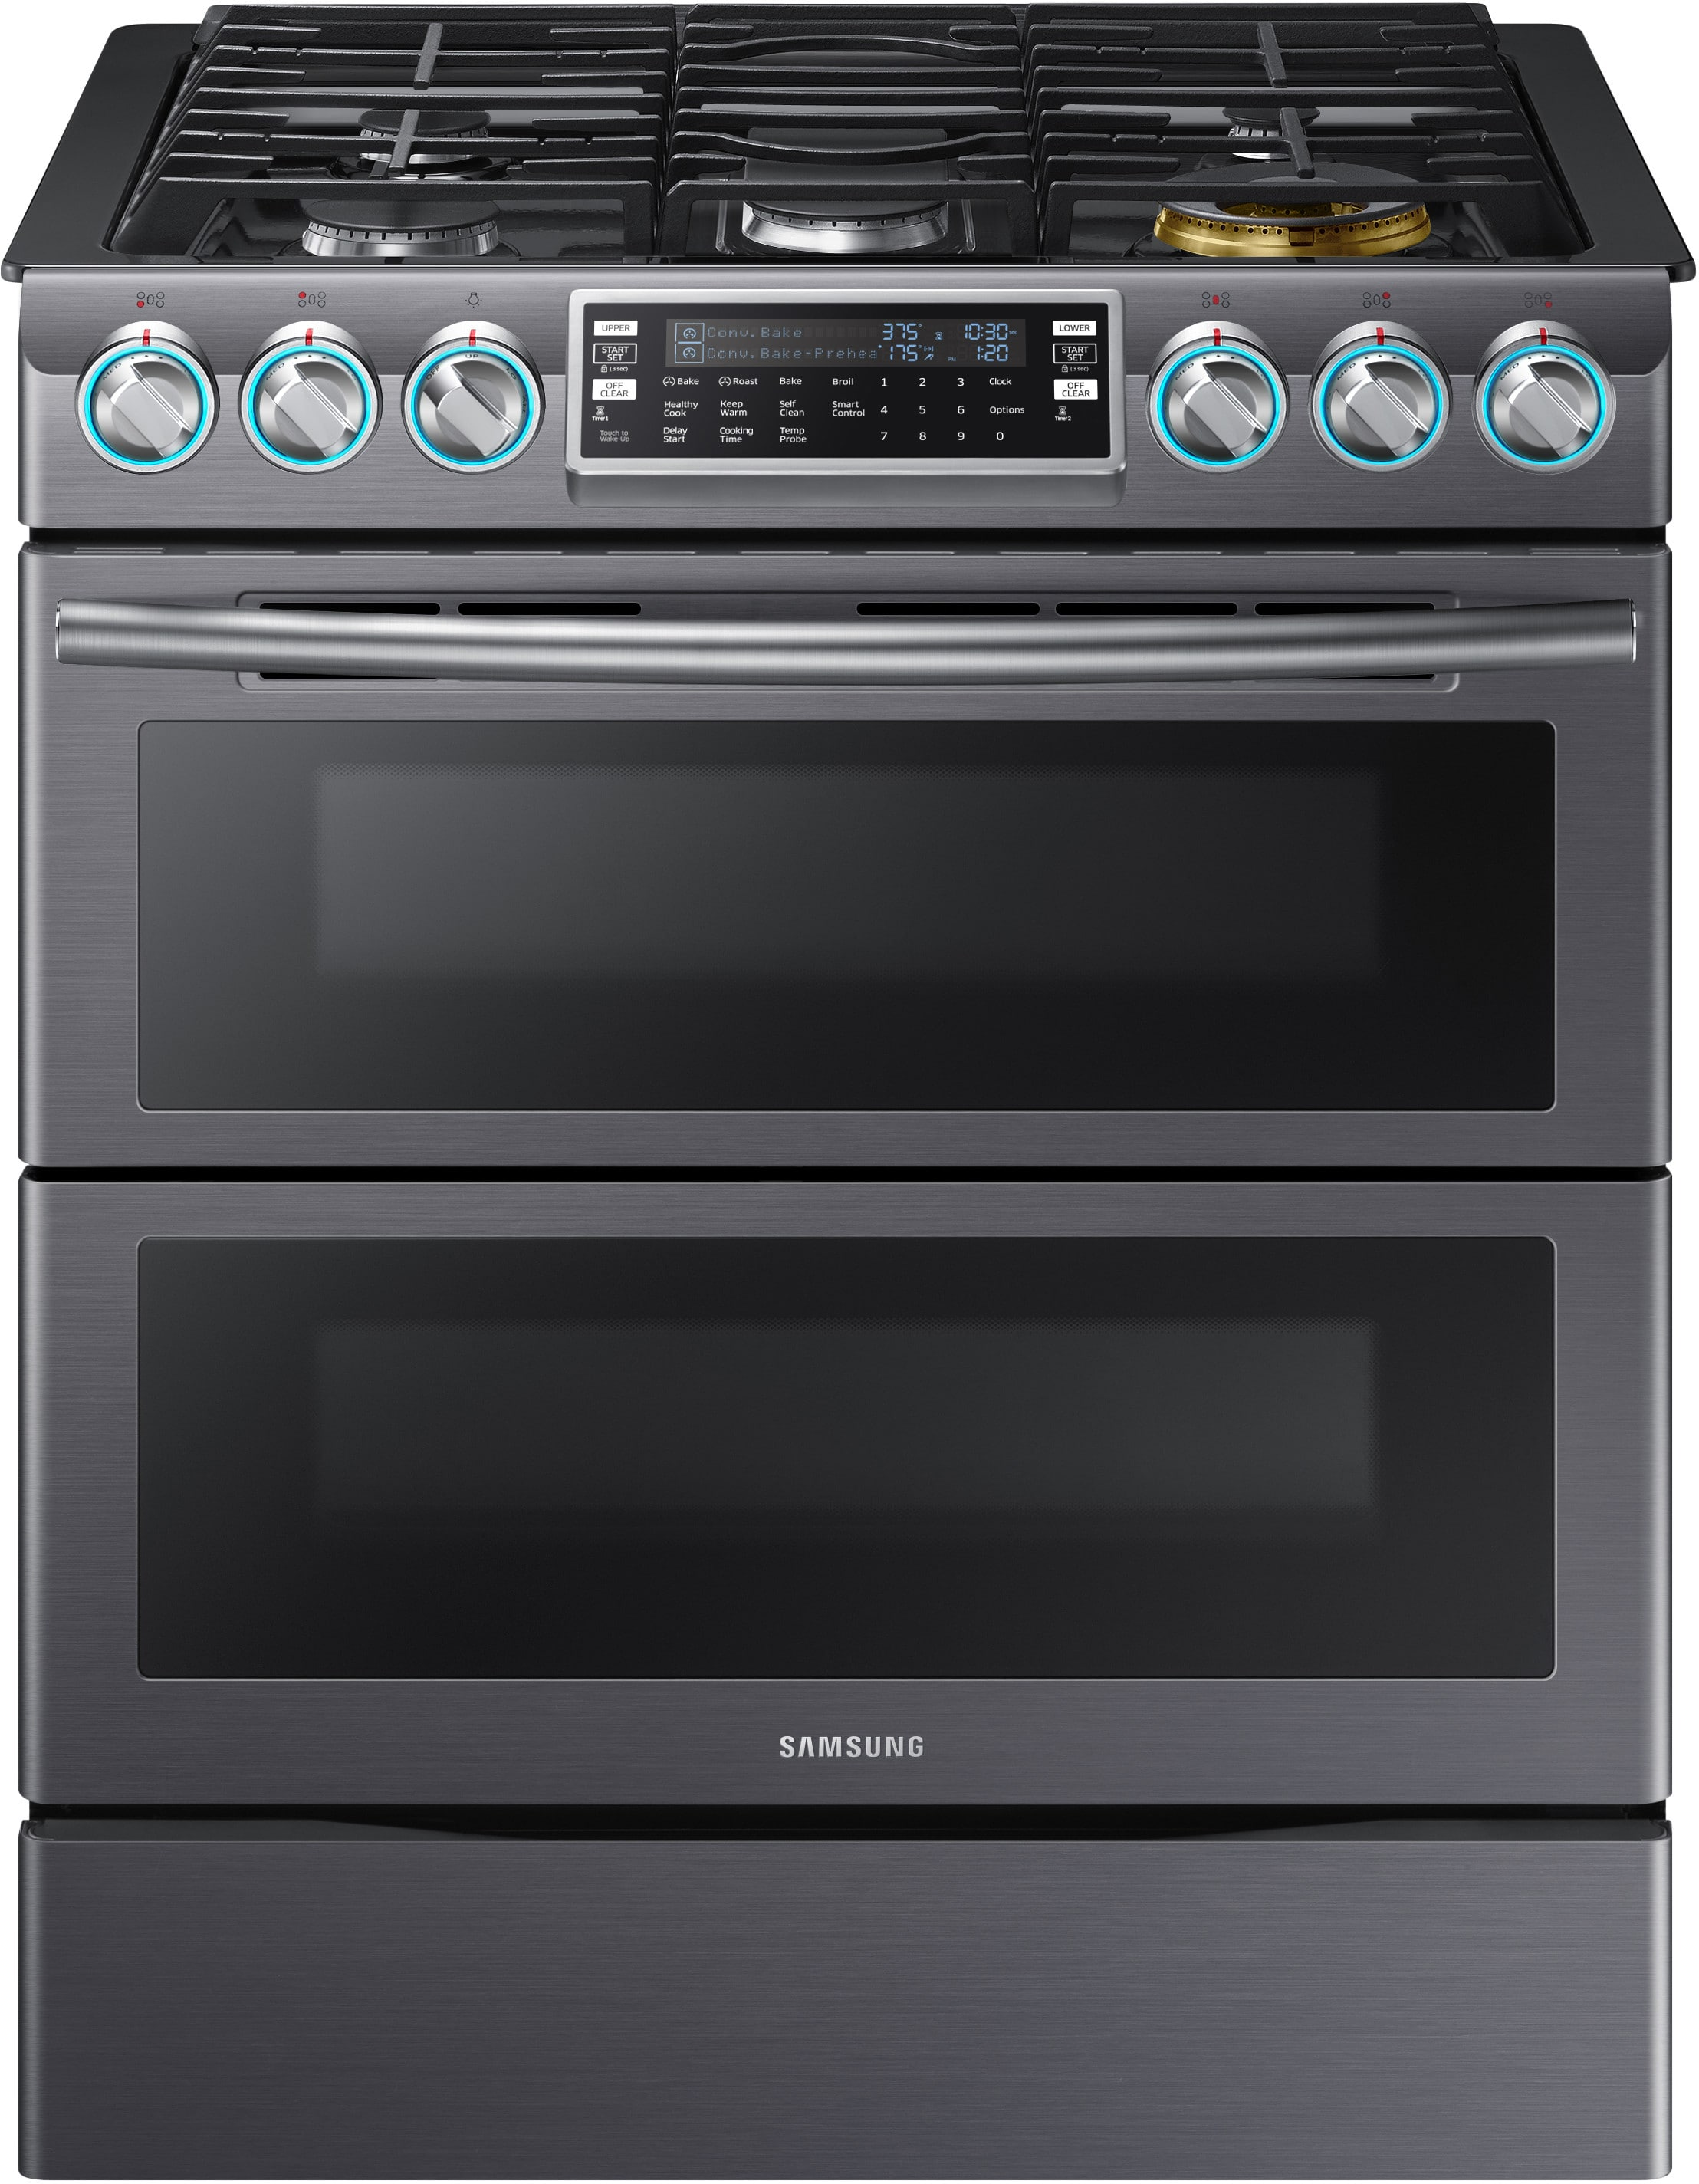 Samsung Nx58k9850sg 30 Inch Flex Duo Slide In Gas Range